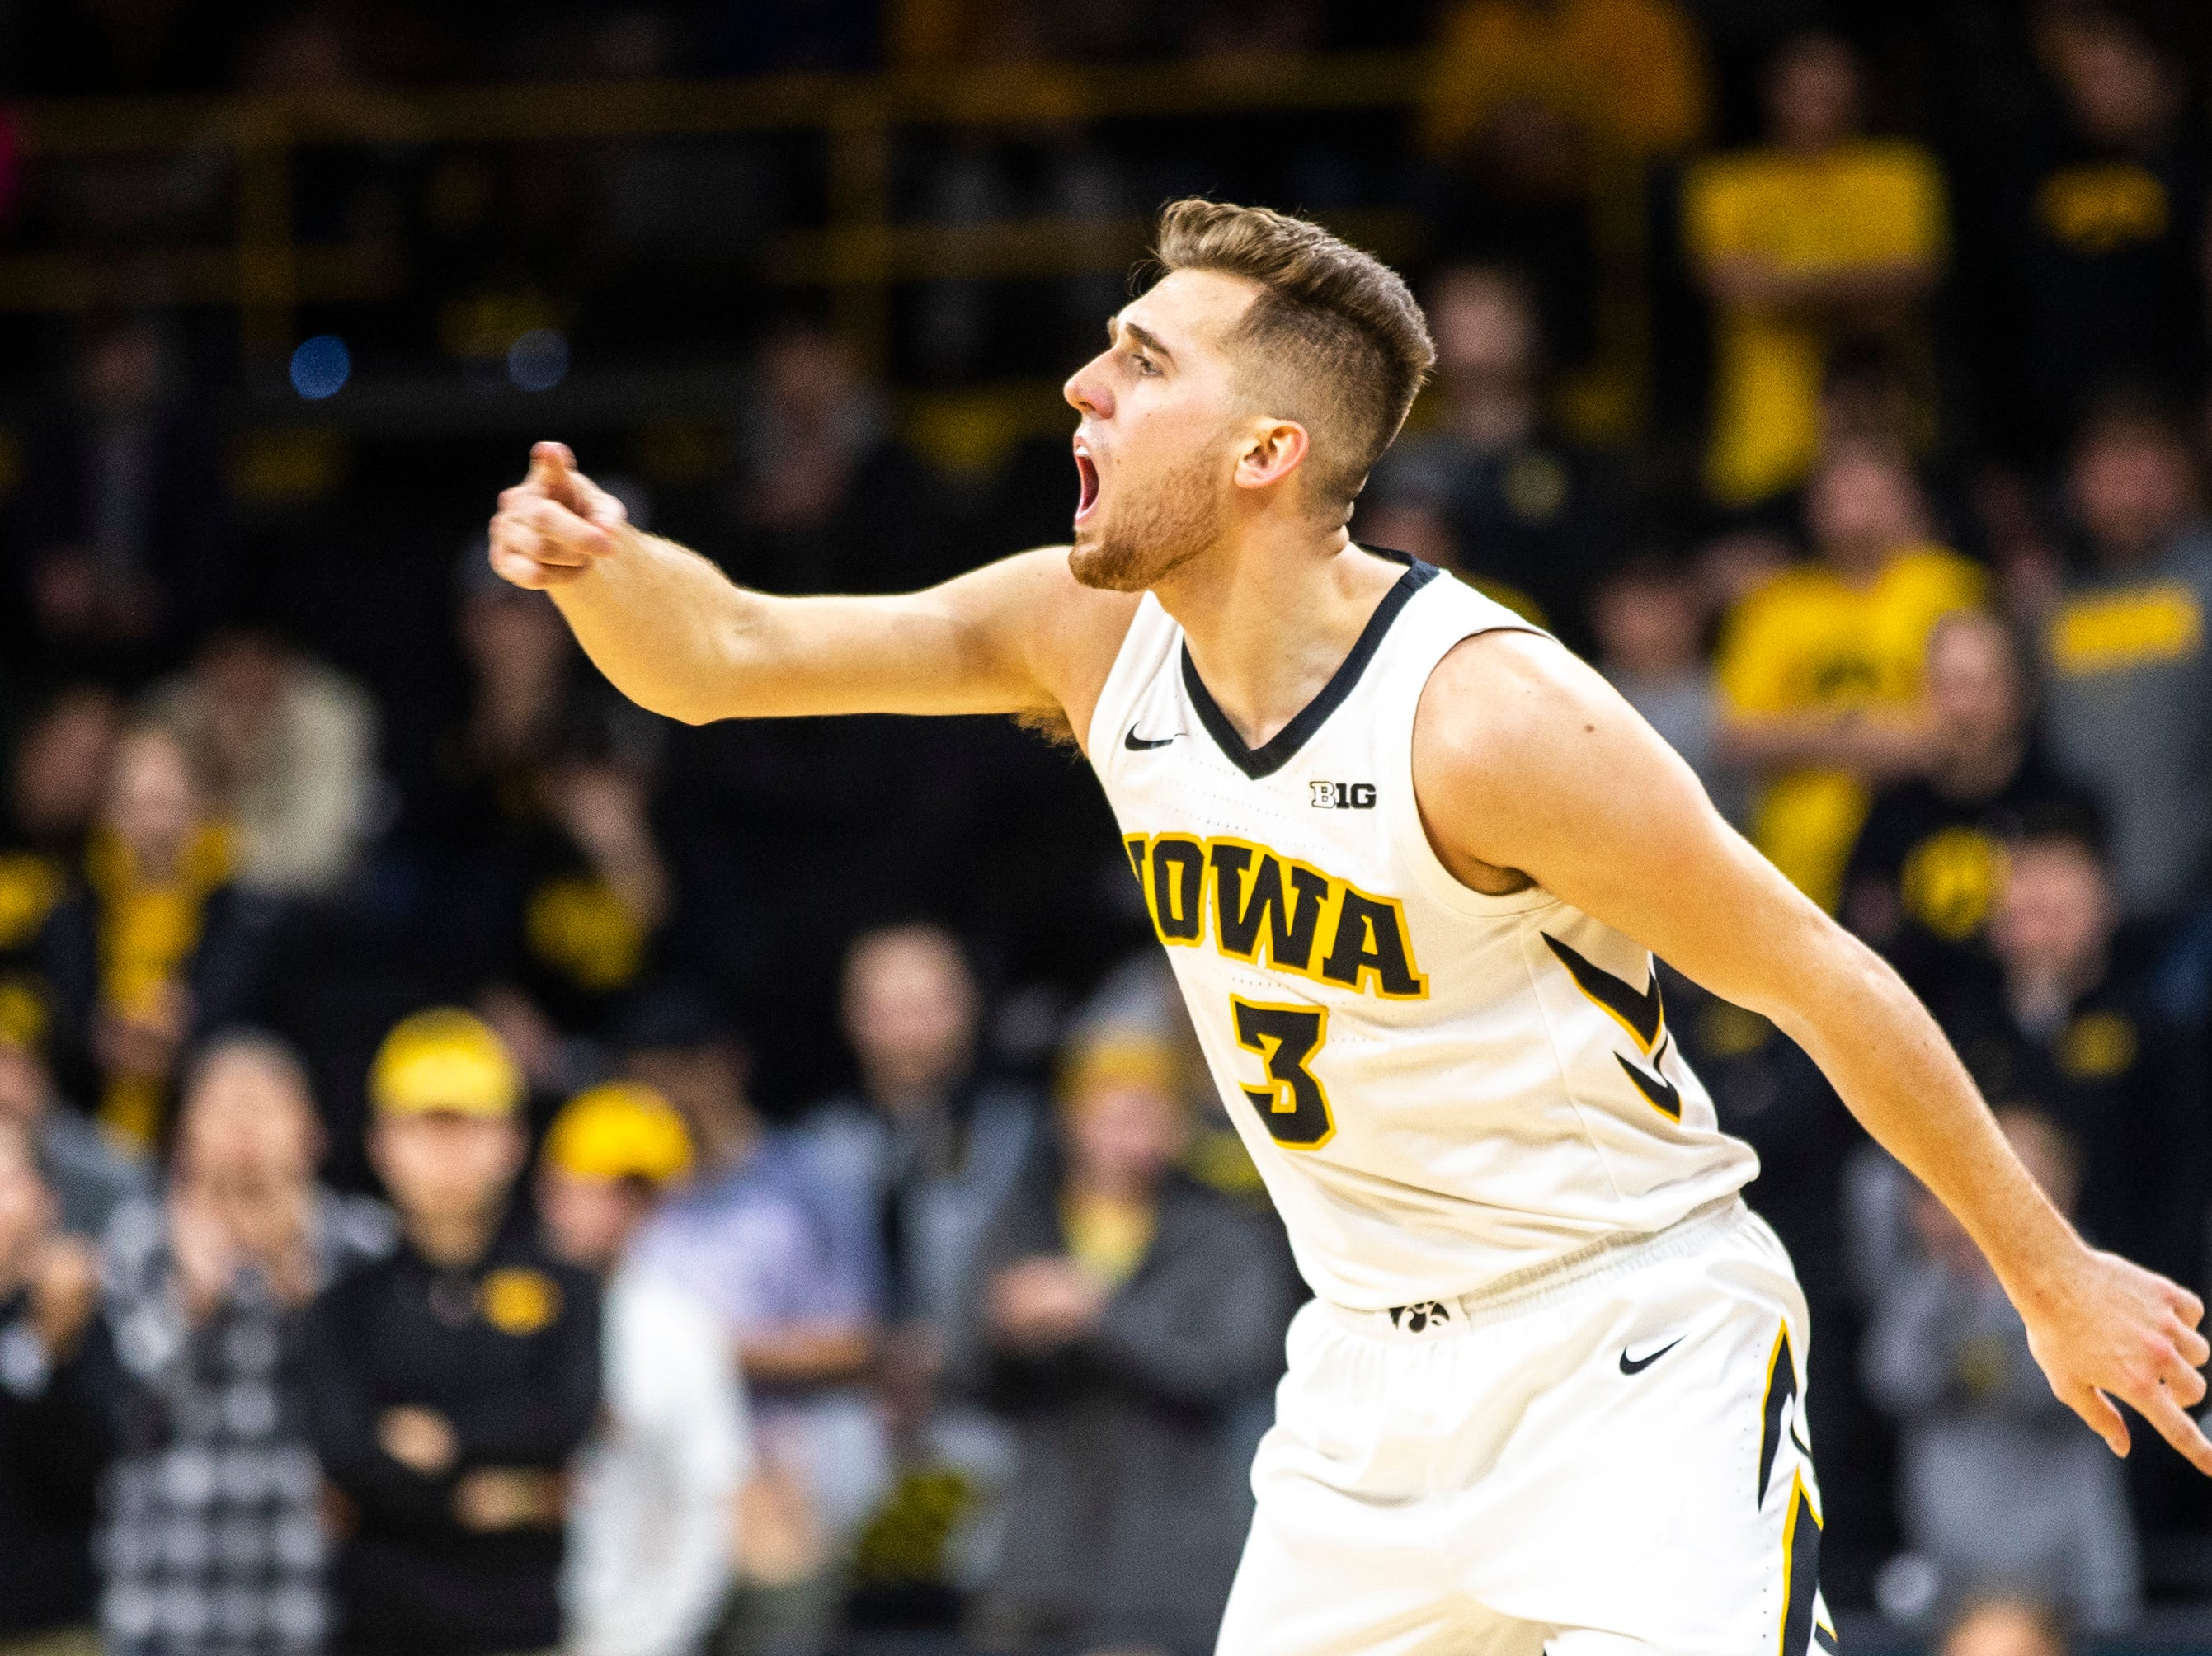 Iowa guard Jordan Bohannon (3) calls out to teammates after making a 3-point basket during a NCAA Big Ten Conference men's basketball game on Sunday, Feb. 10, 2019 at Carver-Hawkeye Arena in Iowa City, Iowa.